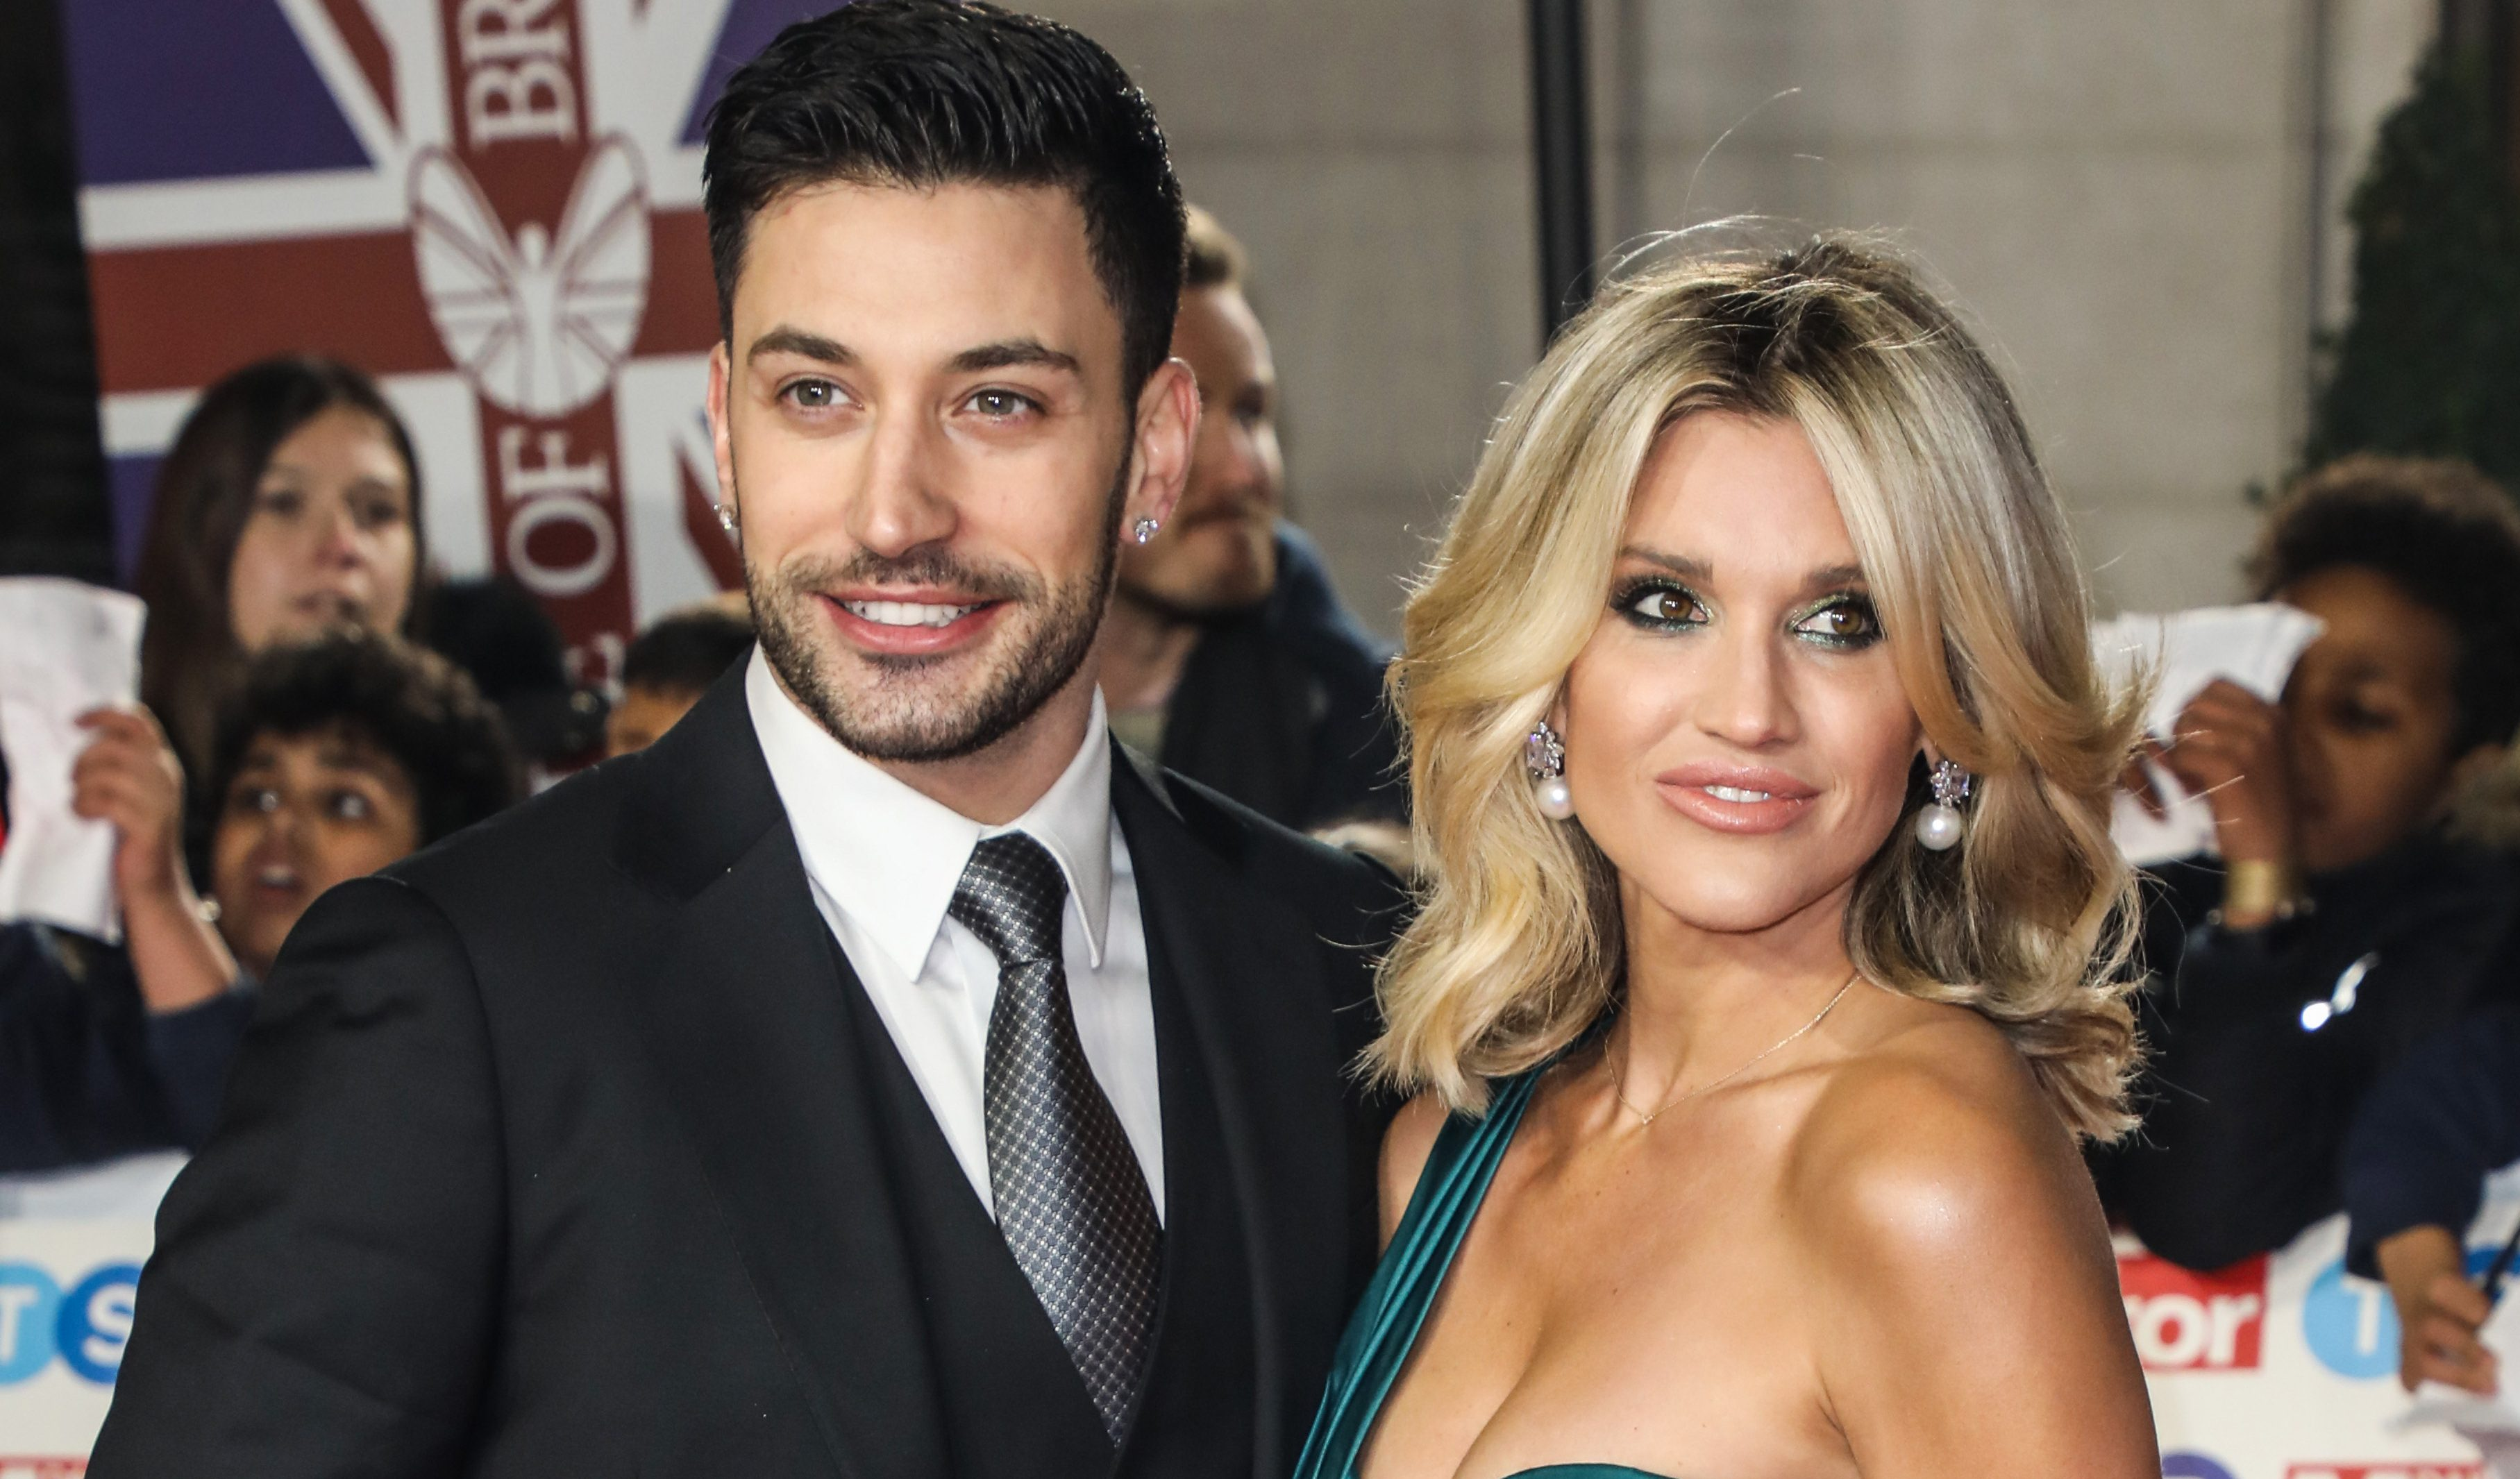 Strictly's Giovanni Pernice 'takes swipe at ex Ashley Roberts' after shock split